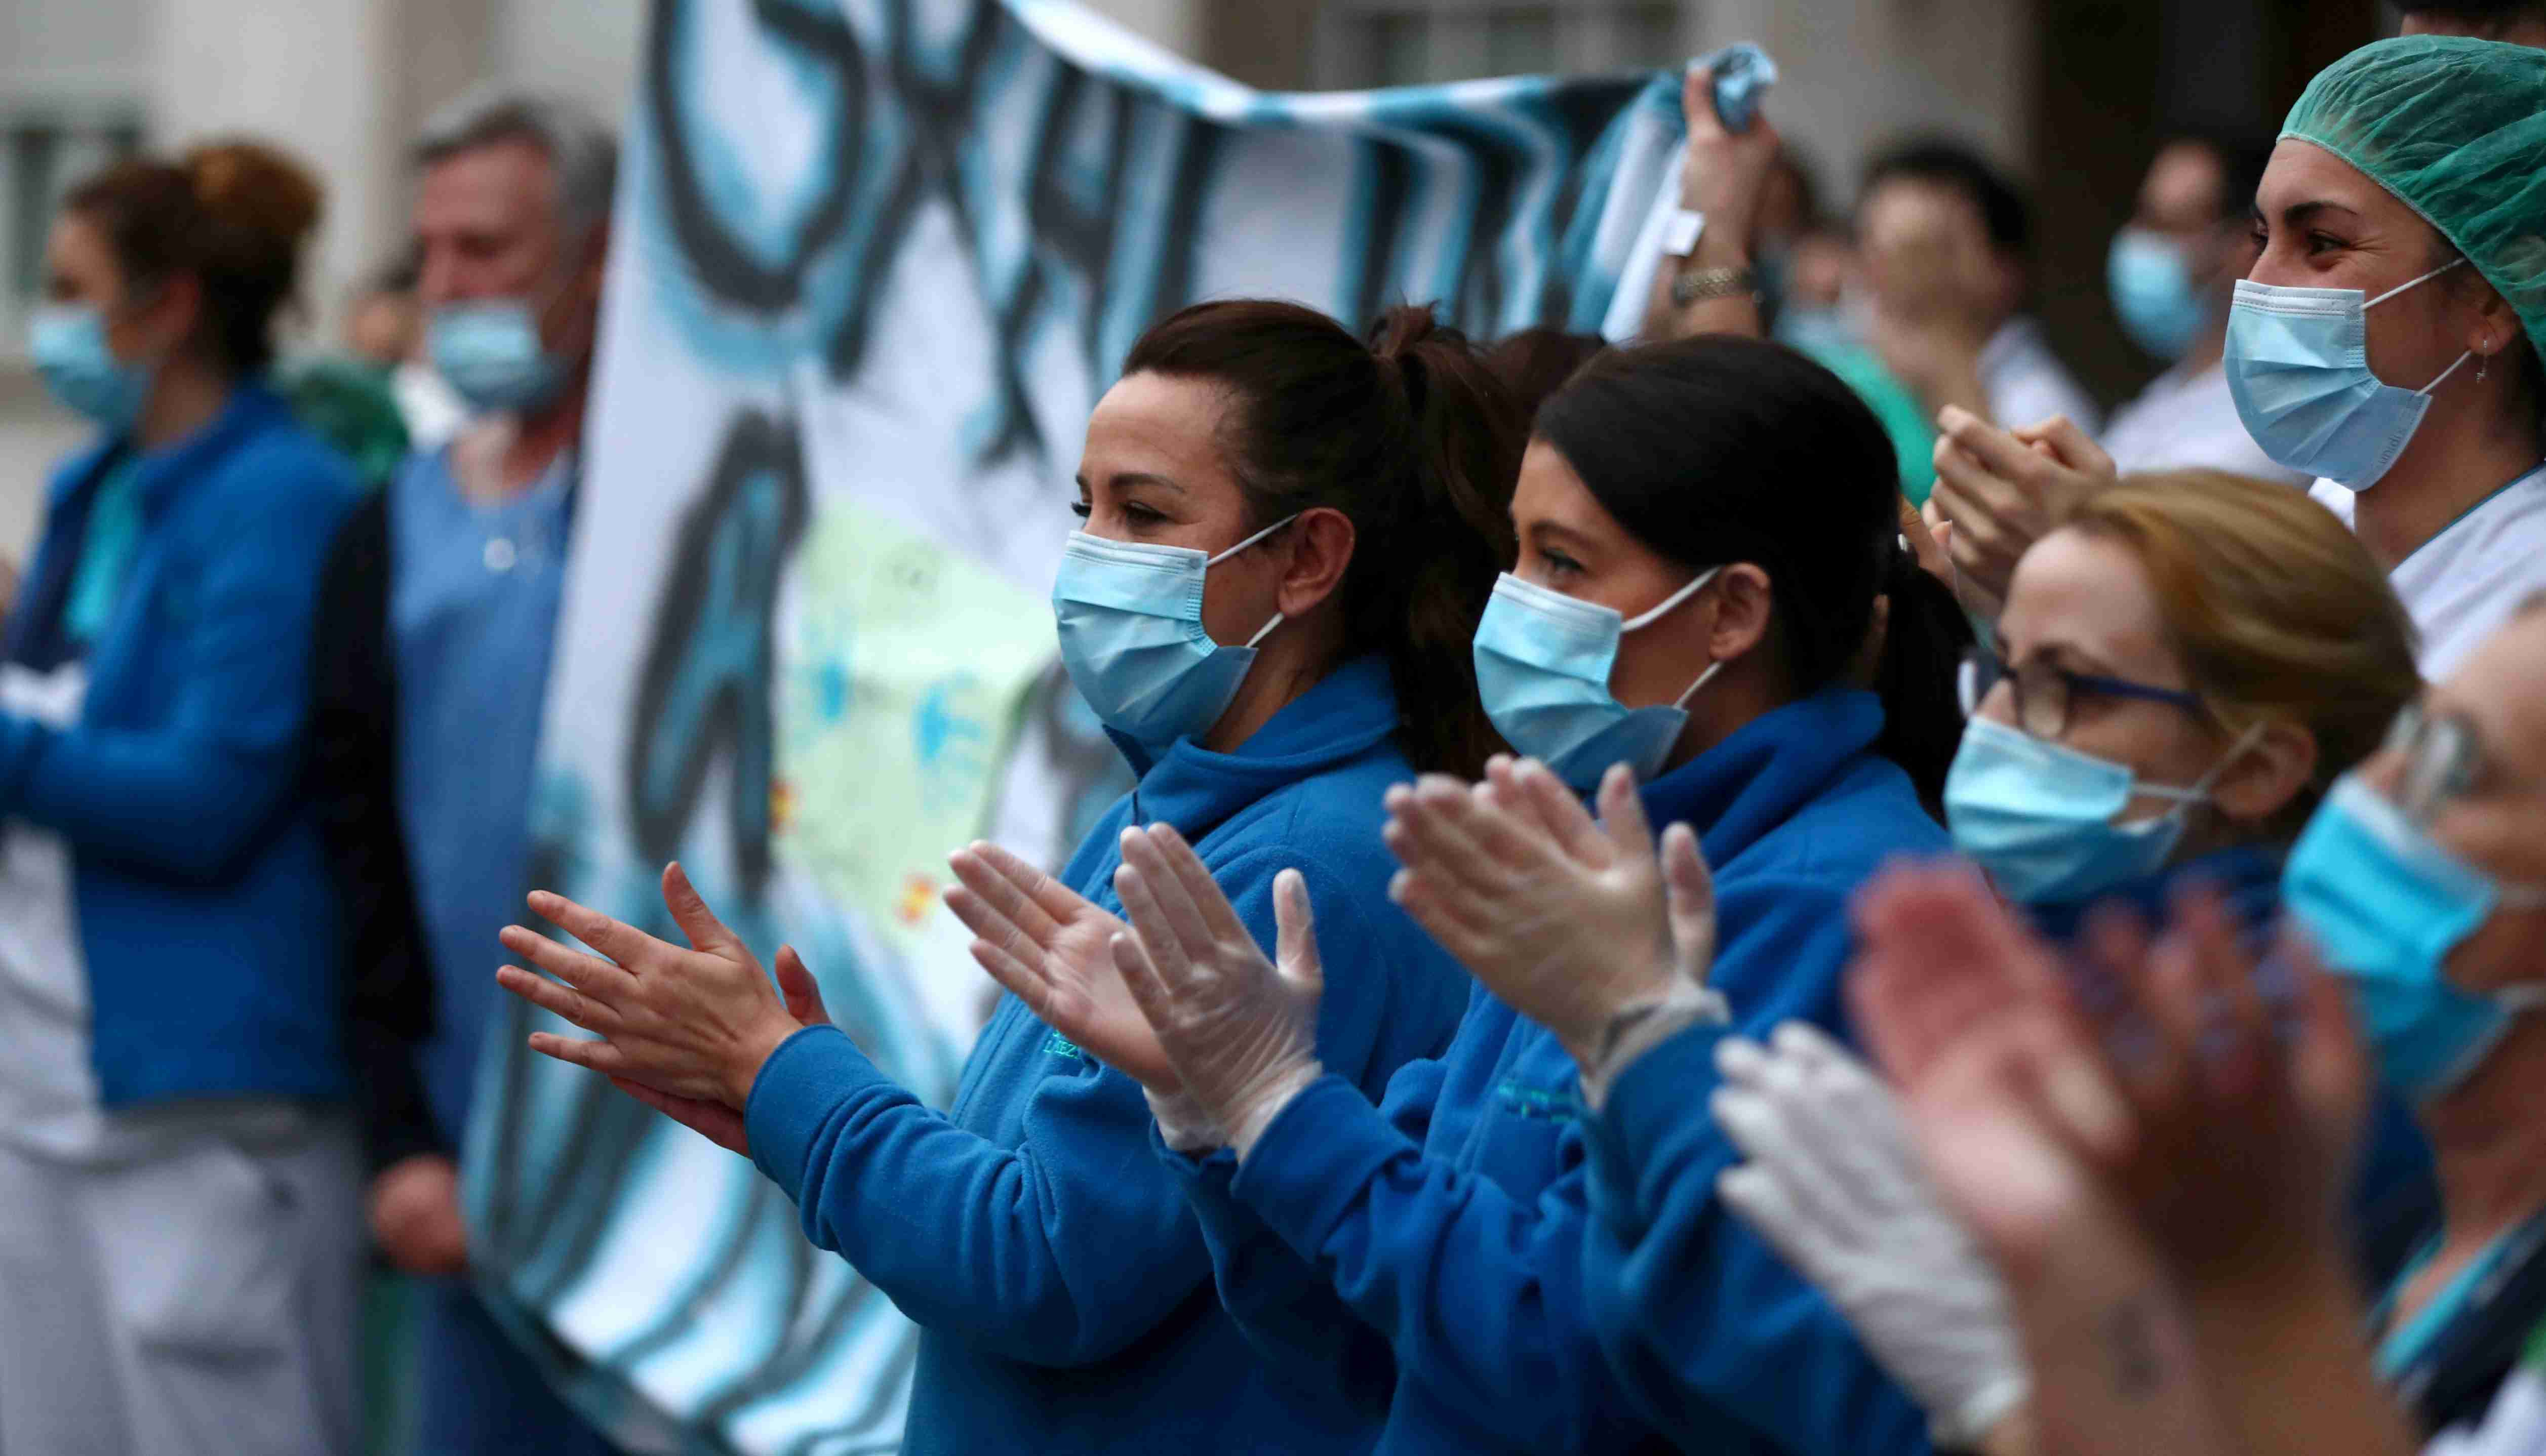 Medical staff from Fundacion Jimenez Diaz hospital react as neighbours applaud from their balconies in support for healthcare workers, amid the coronavirus disease (COVID-19) outbreak, in Madrid, Spain, March 30, 2020. REUTERS/Sergio Perez